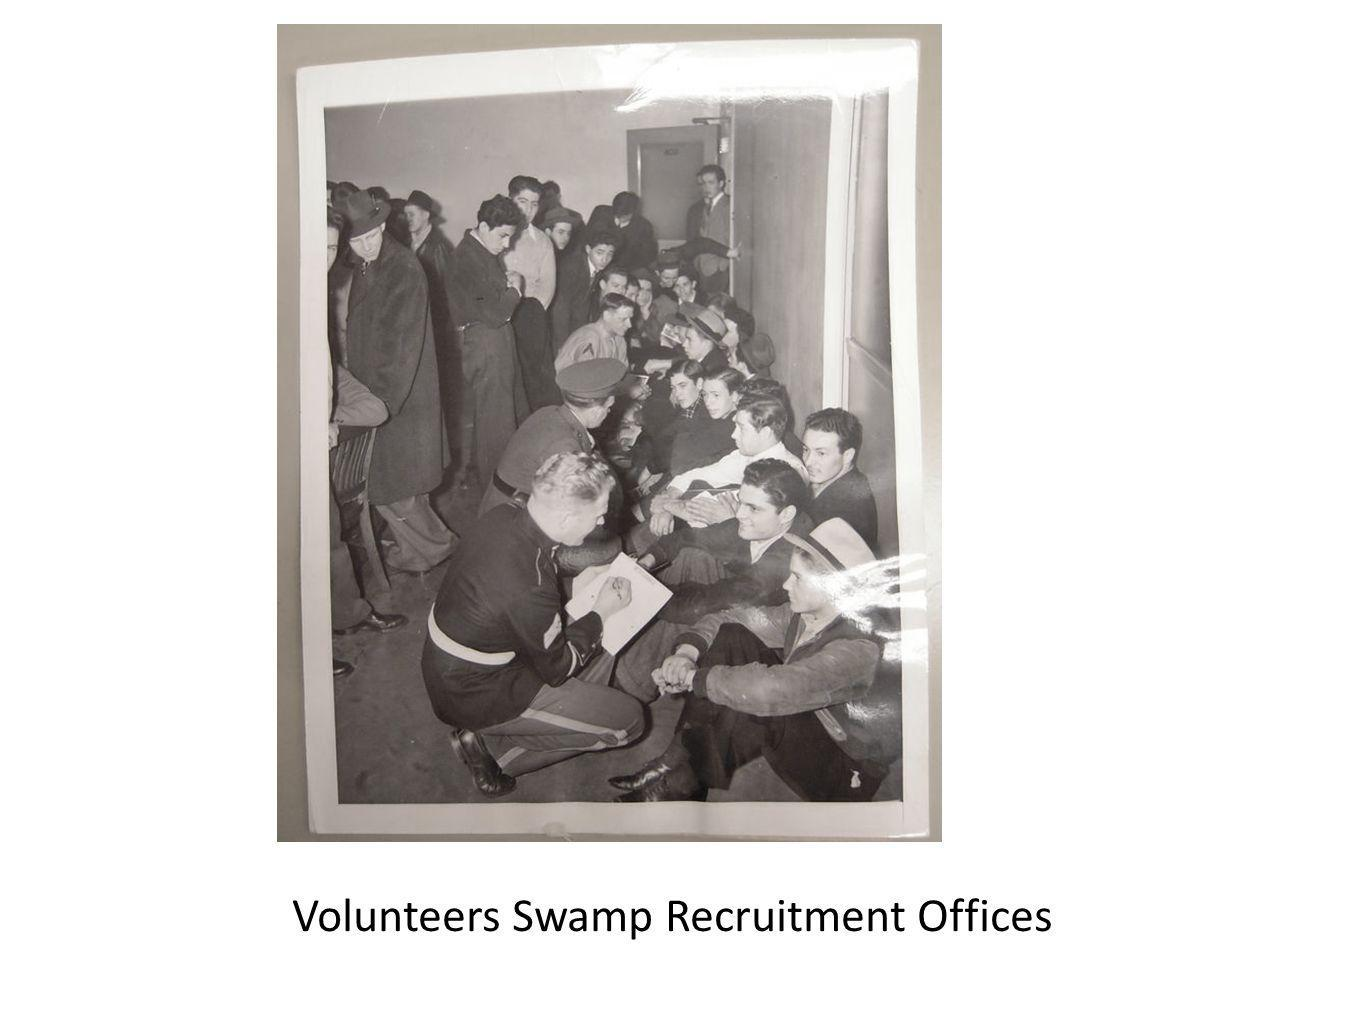 Volunteers Swamp Recruitment Offices